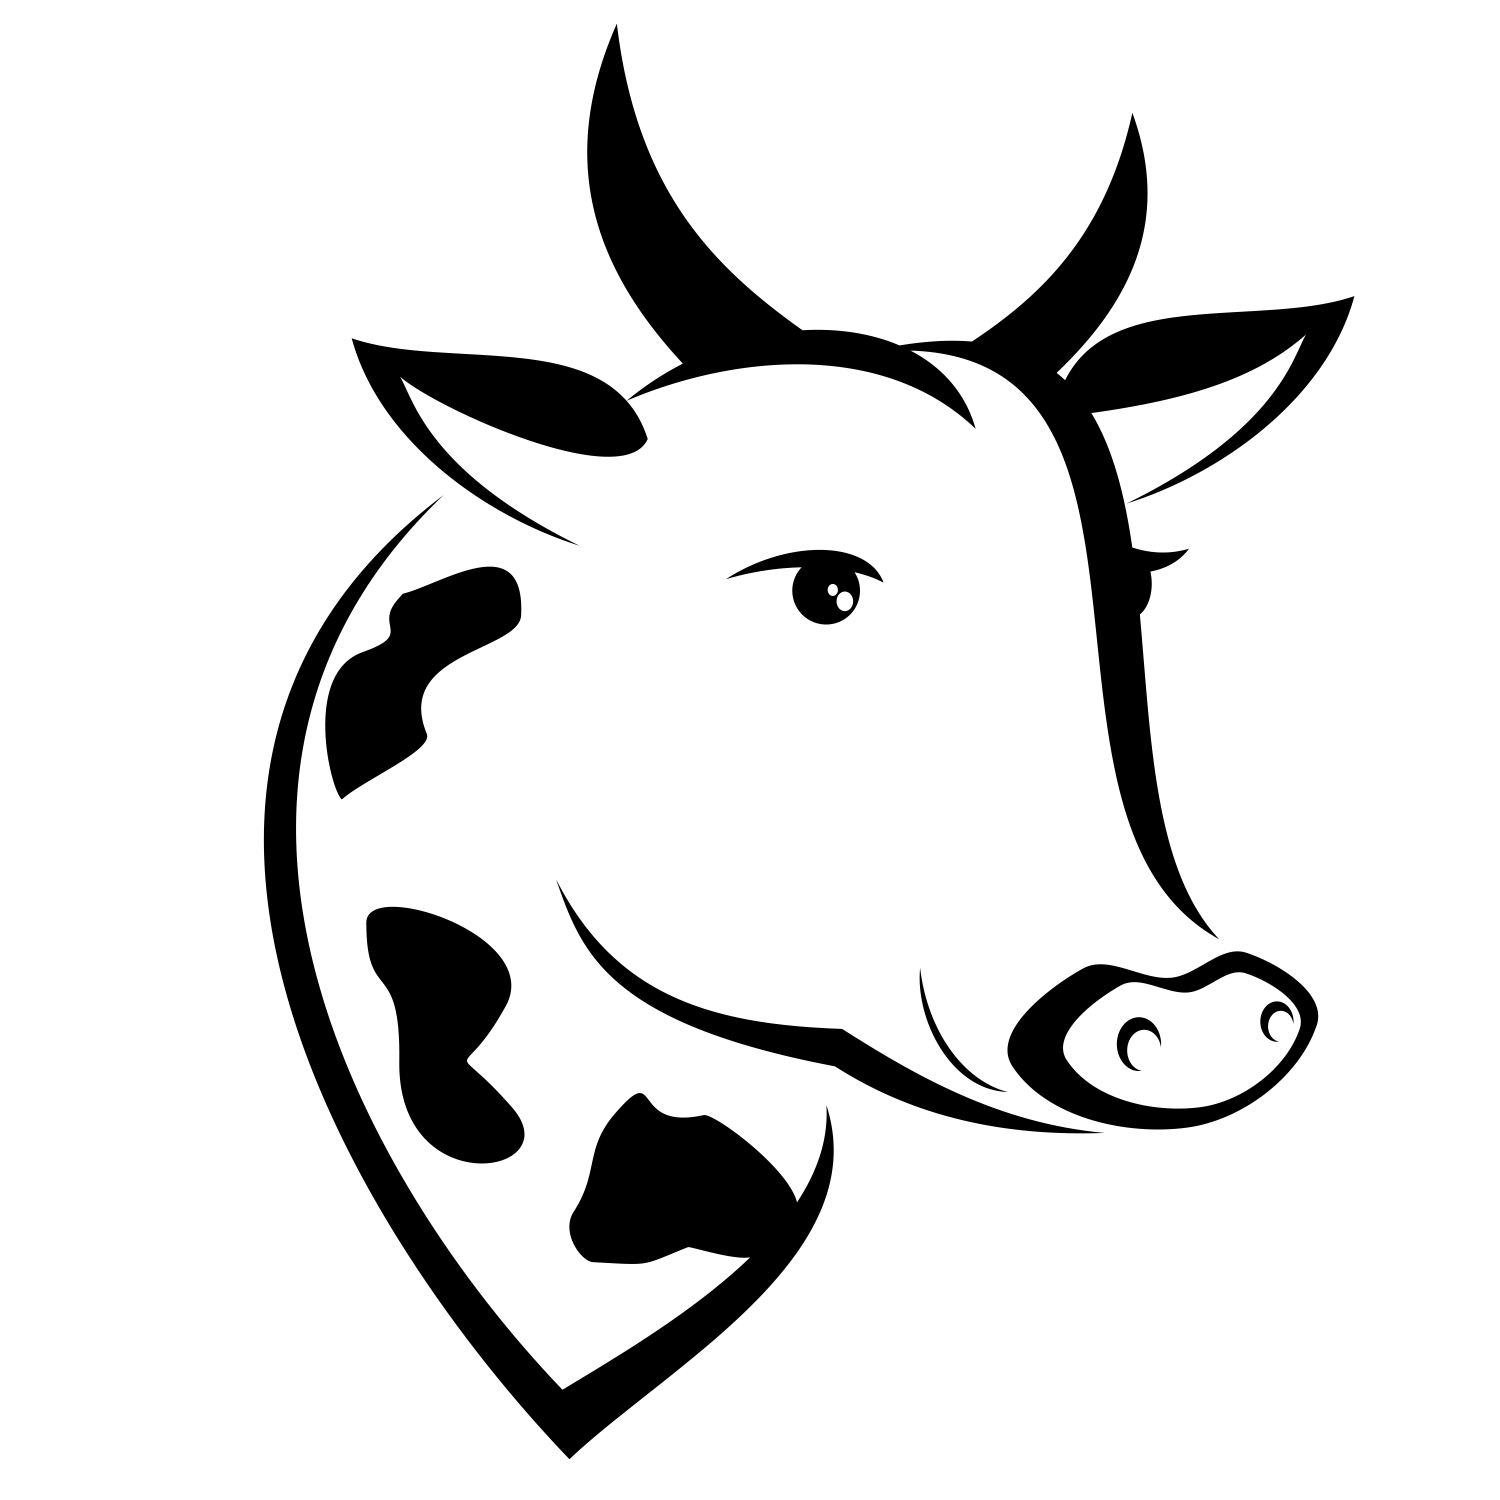 Png Cow Head - Vector Cowu0027S Head, Transparent background PNG HD thumbnail